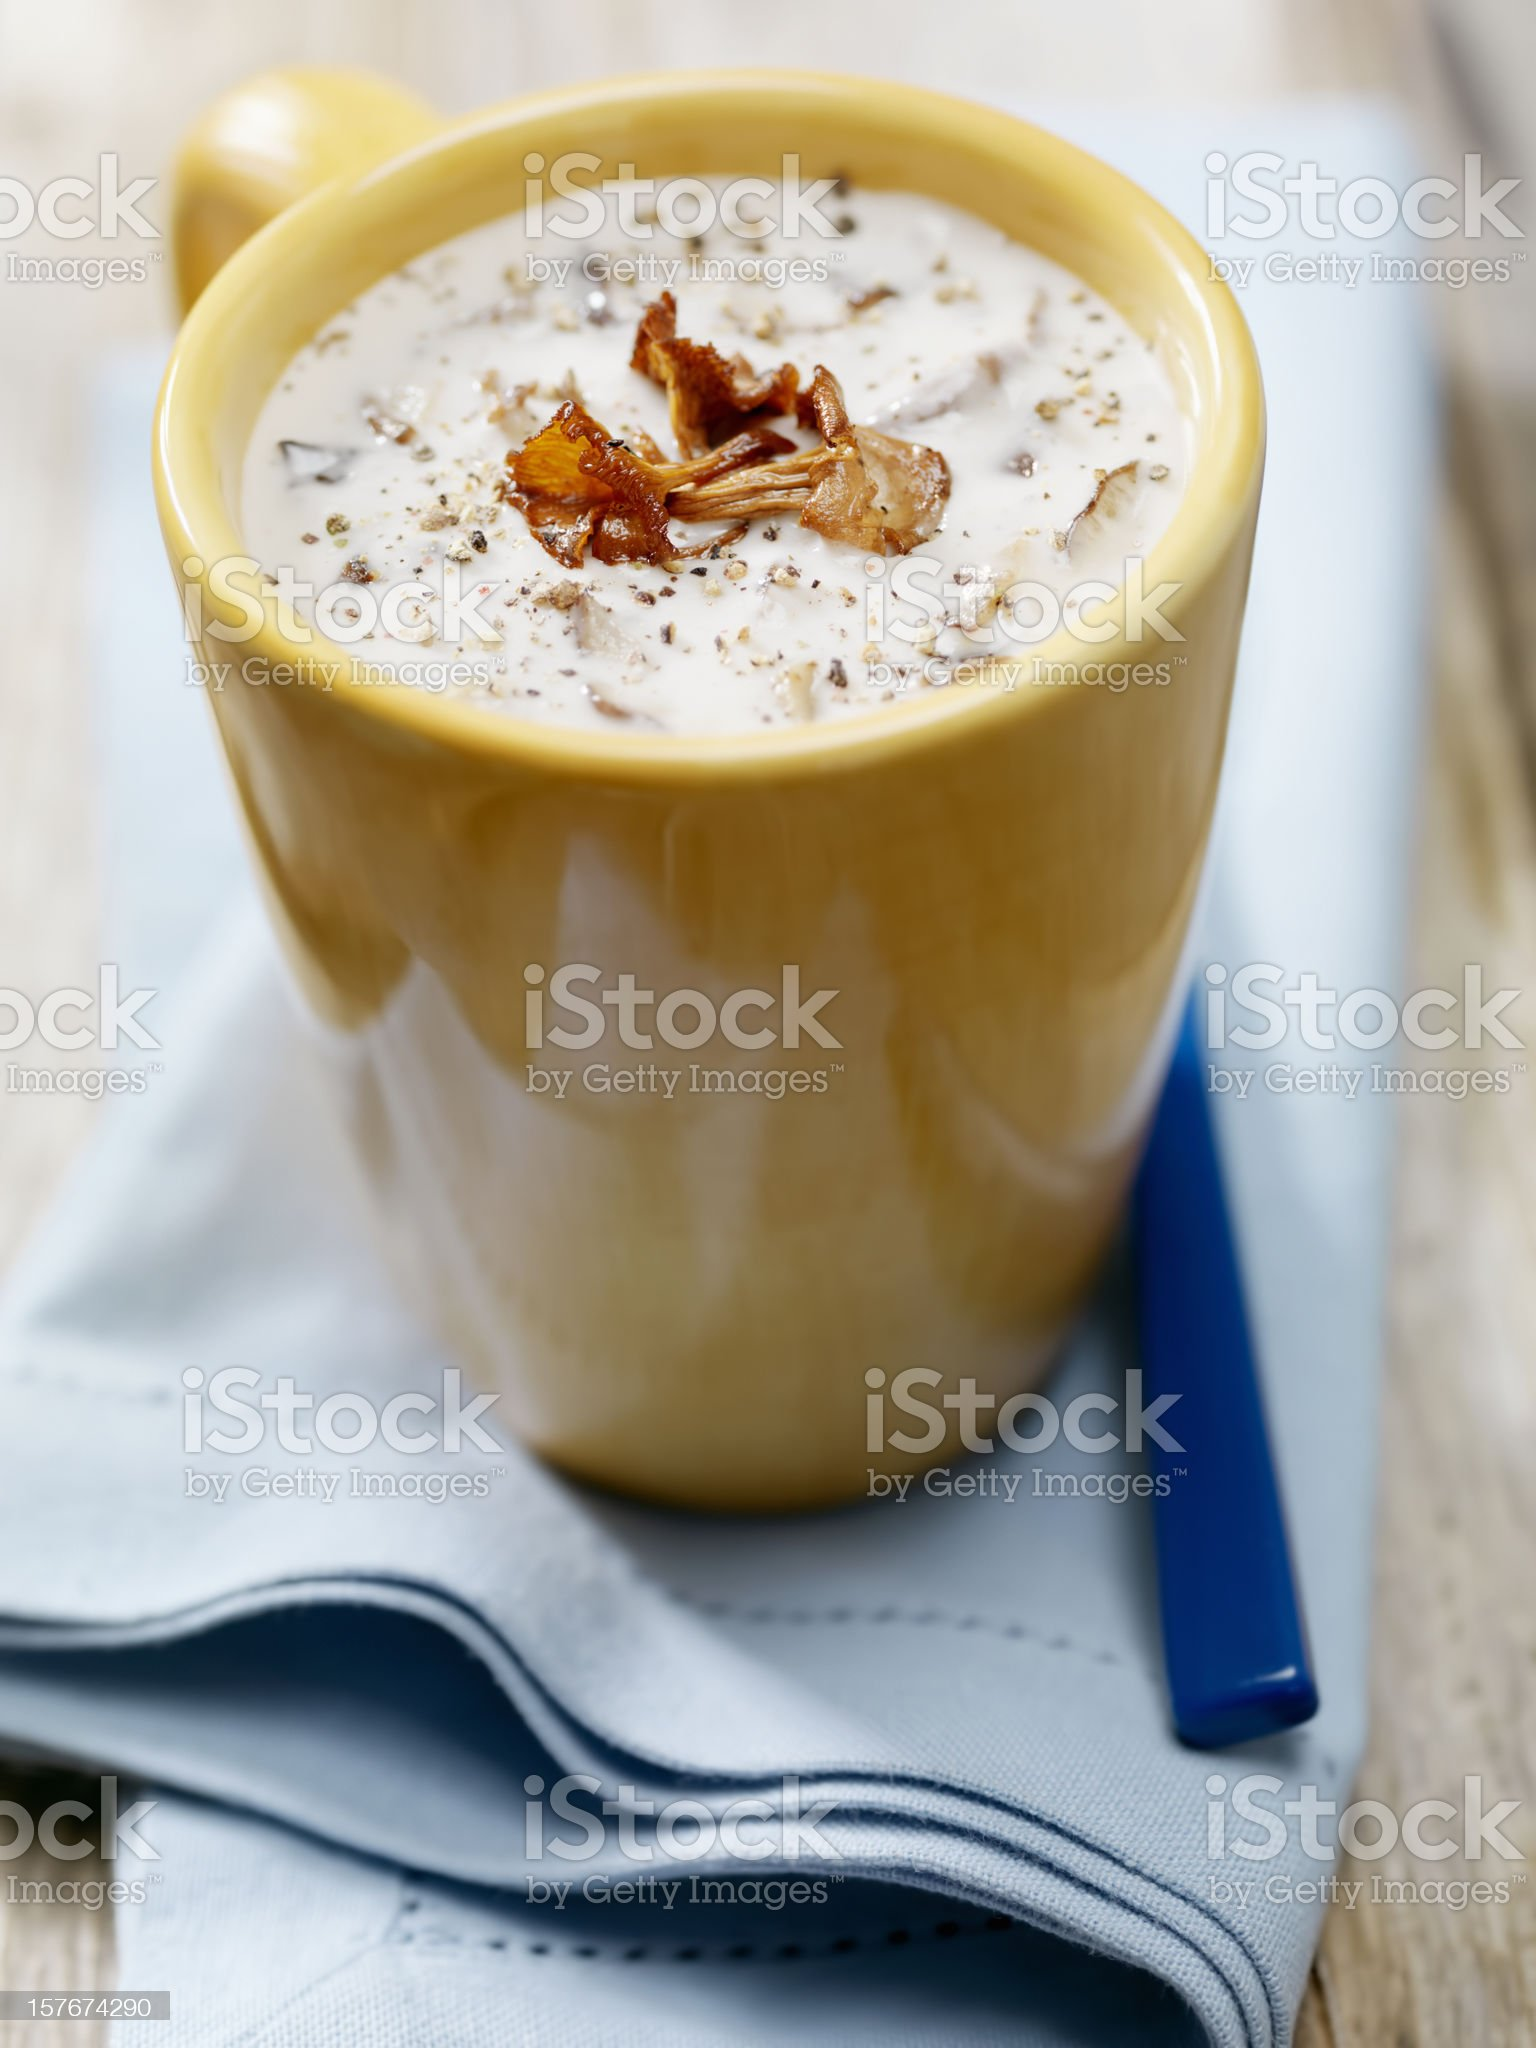 Creamy Mushroom Soup with Chanterelle Mushrooms royalty-free stock photo